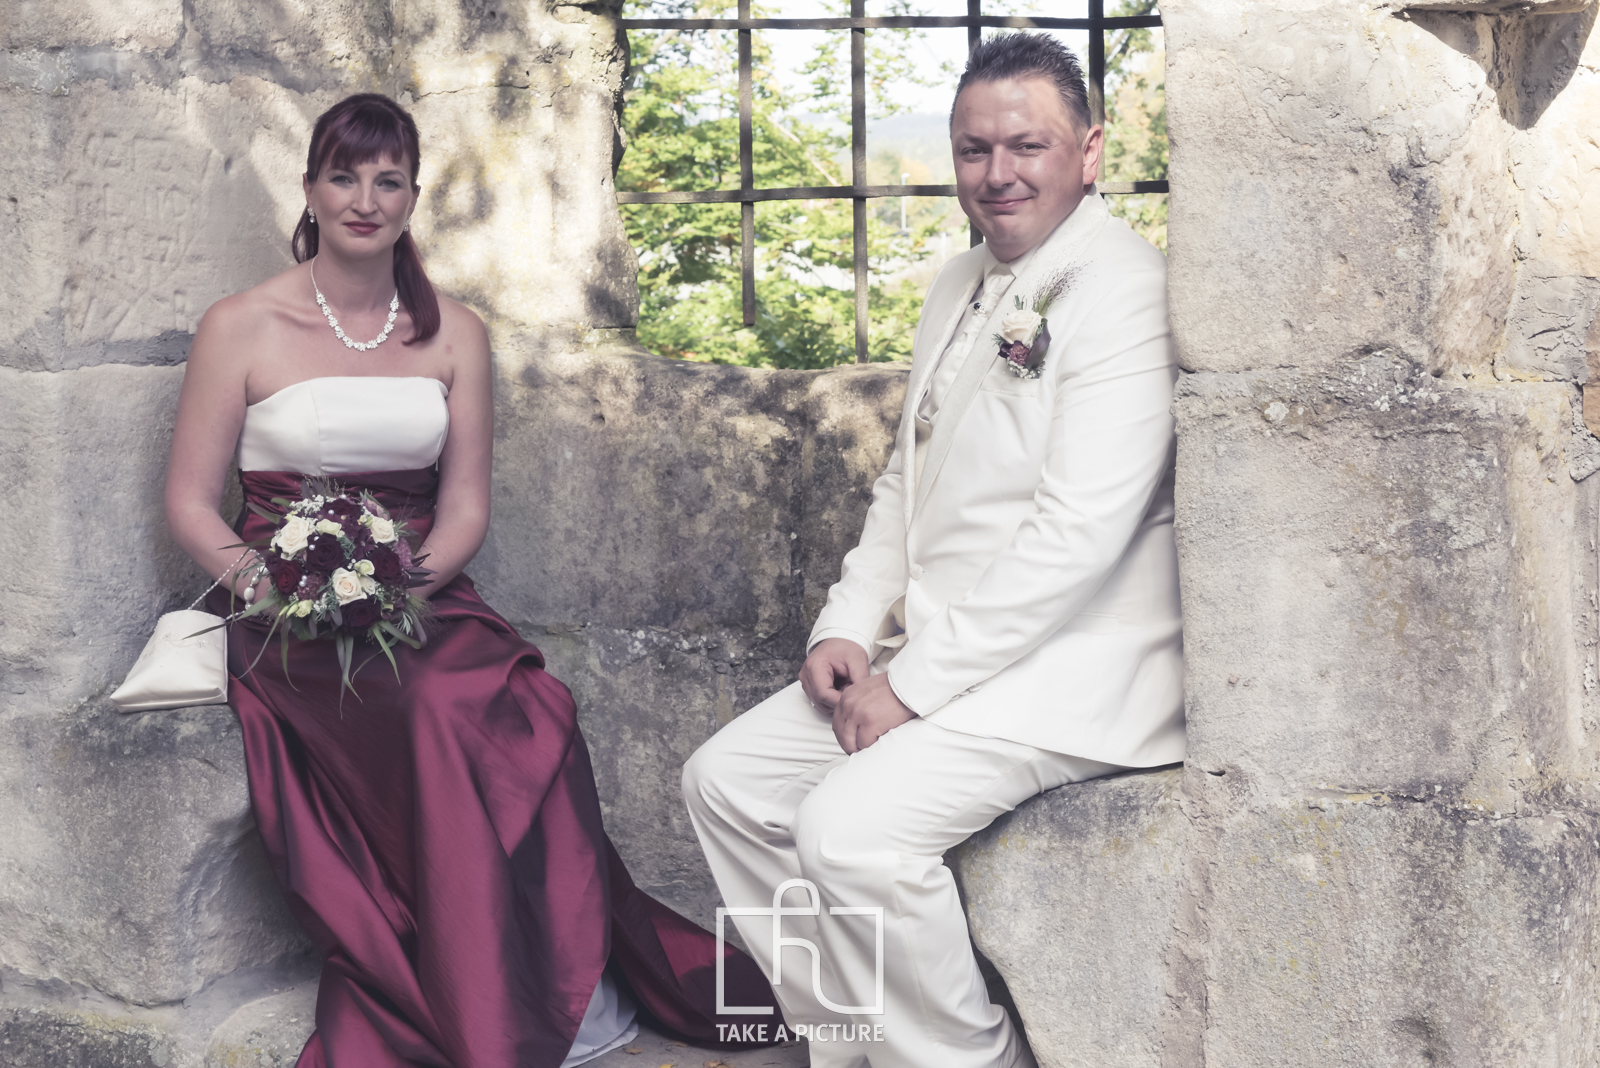 schwäbisch gmünd, lorch, aalen, take a picture, portrait, hochzeit, business, event, fotografie, photography, portraitfotografie, hochzeitfotografie, businessfotografie, eventfotografie, two people, 40-49 years, mature adult, 30-39 years, mid adult, adult, wedding, bride, people, romance, outdoors, dress, veil, ceremony, portrait, fashion, horizontal, color image, men, males, women, females, bridegroom, love - emotion, clothing, engagement, desire, sensuality, wedding dress, suit, life events, couple - relationship, heterosexual couple, adults only, day